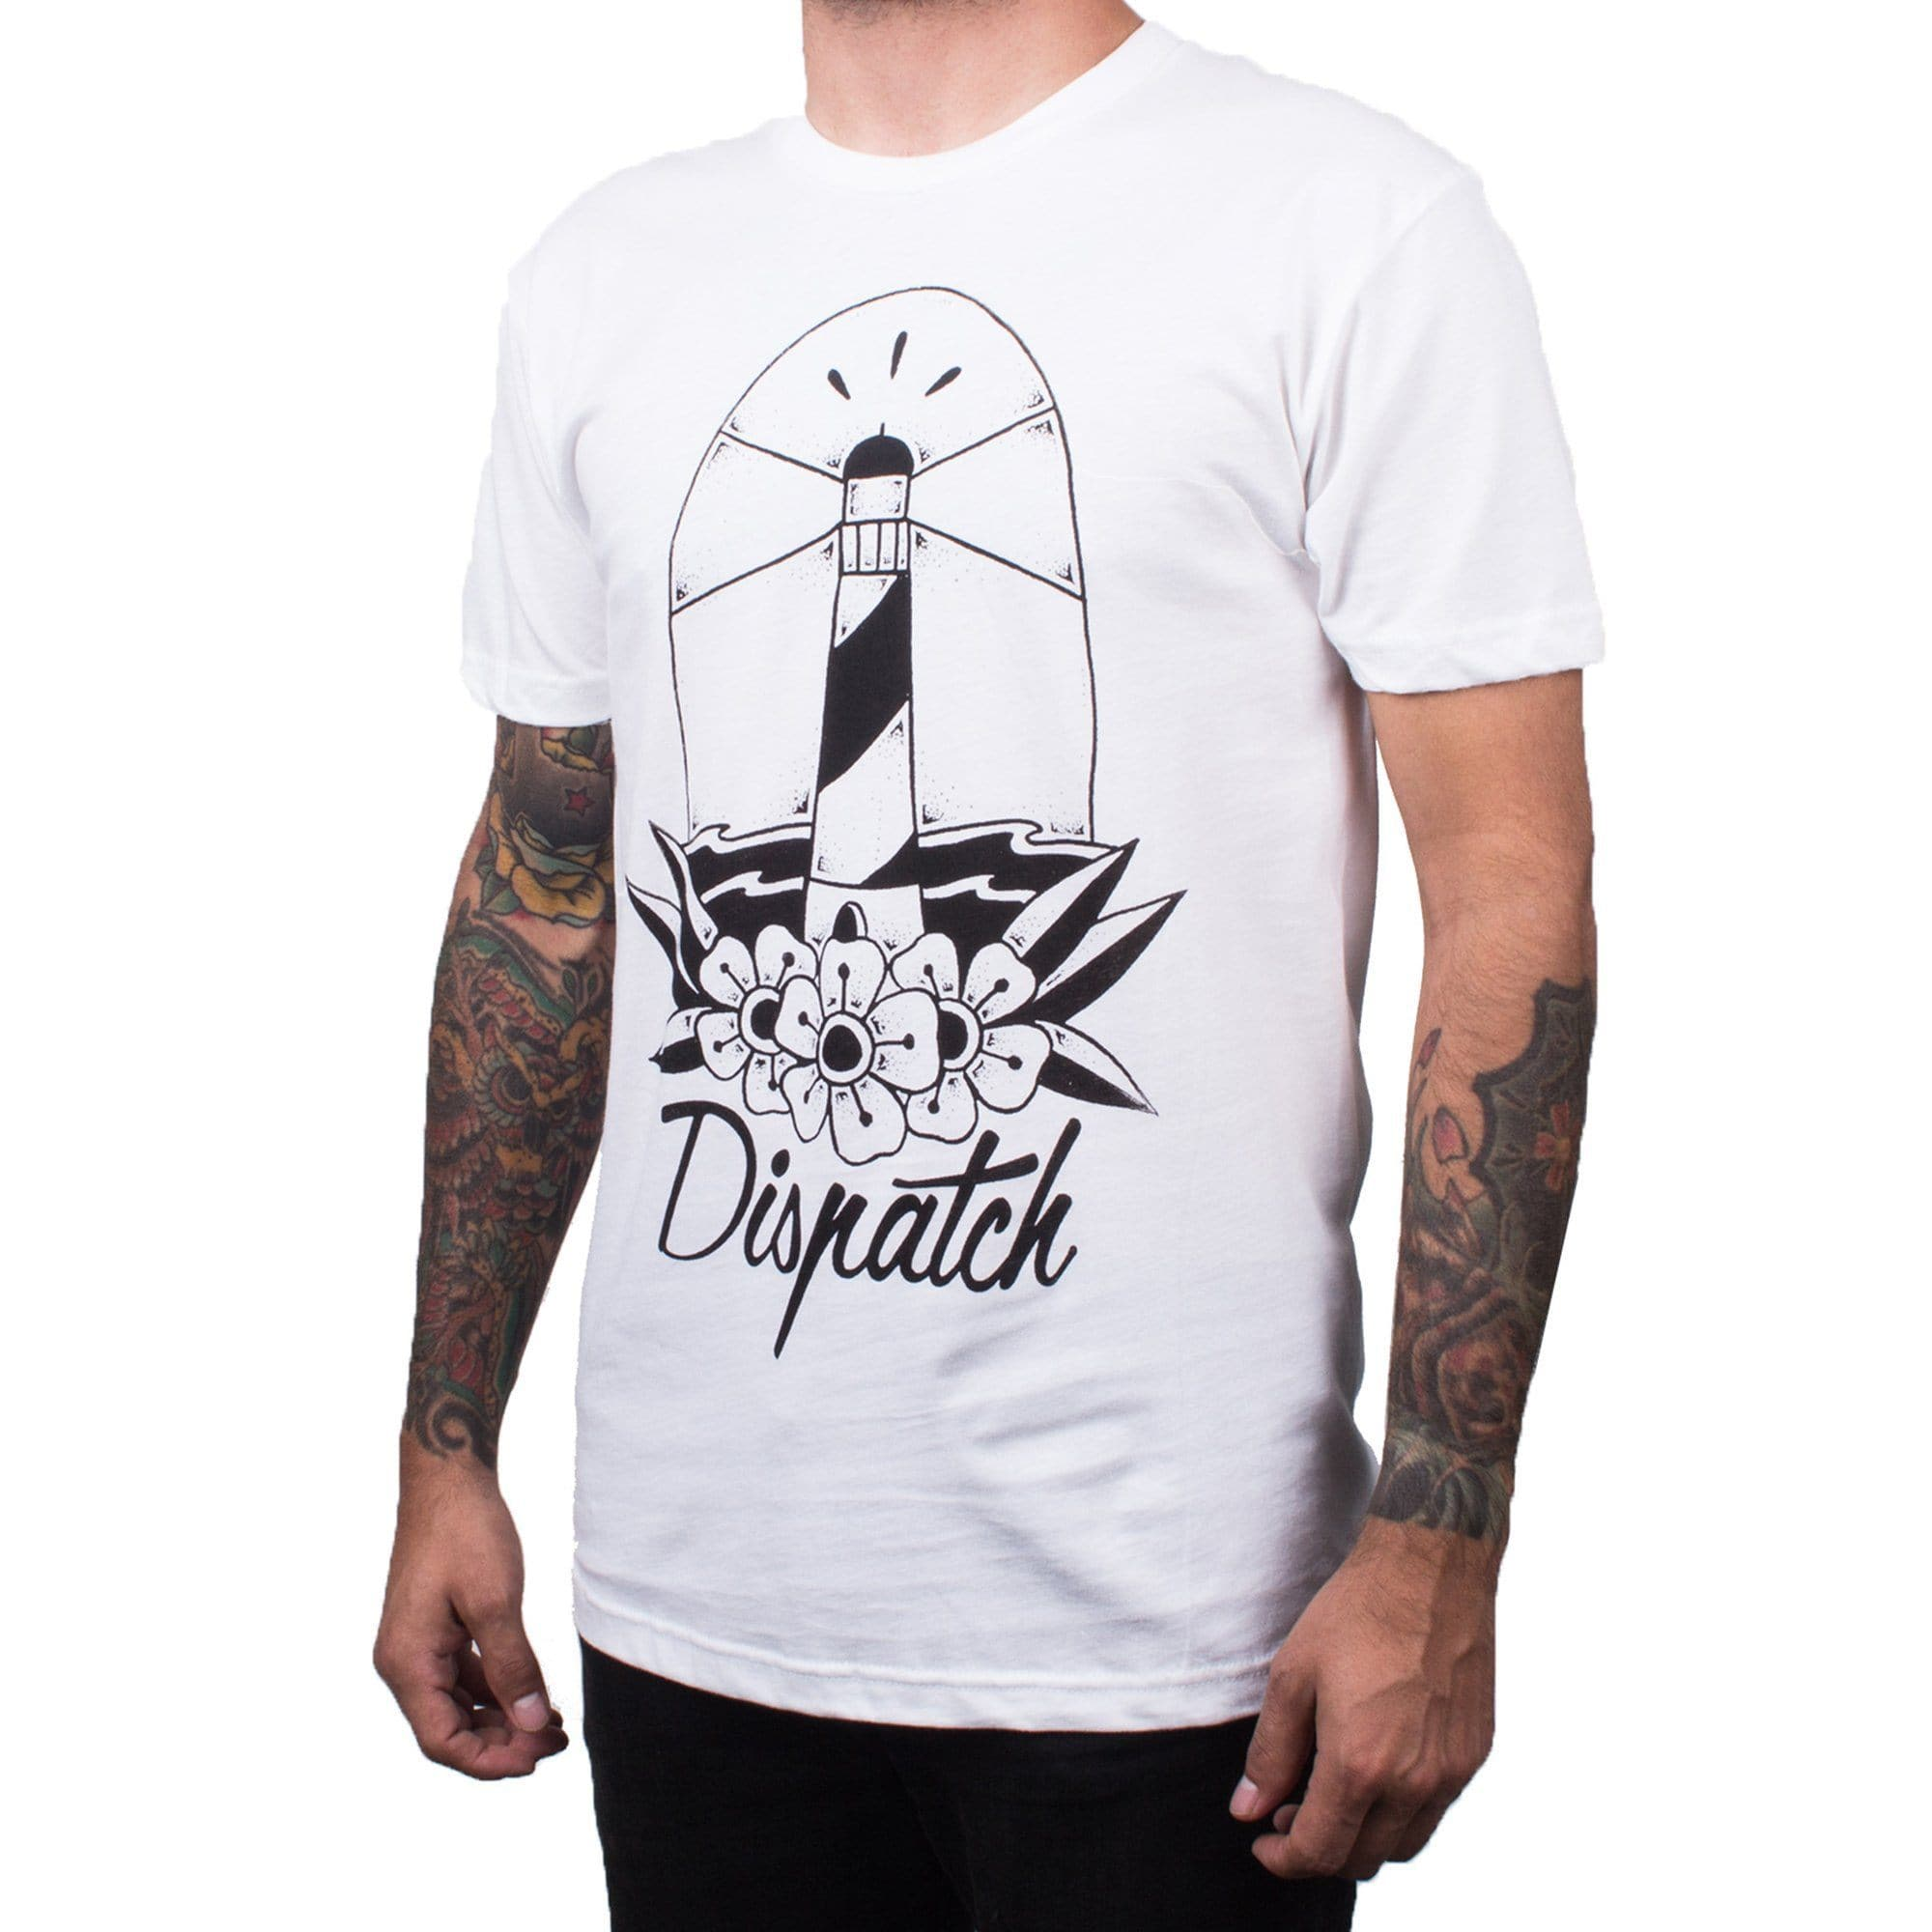 'Lighthouse' T-Shirt